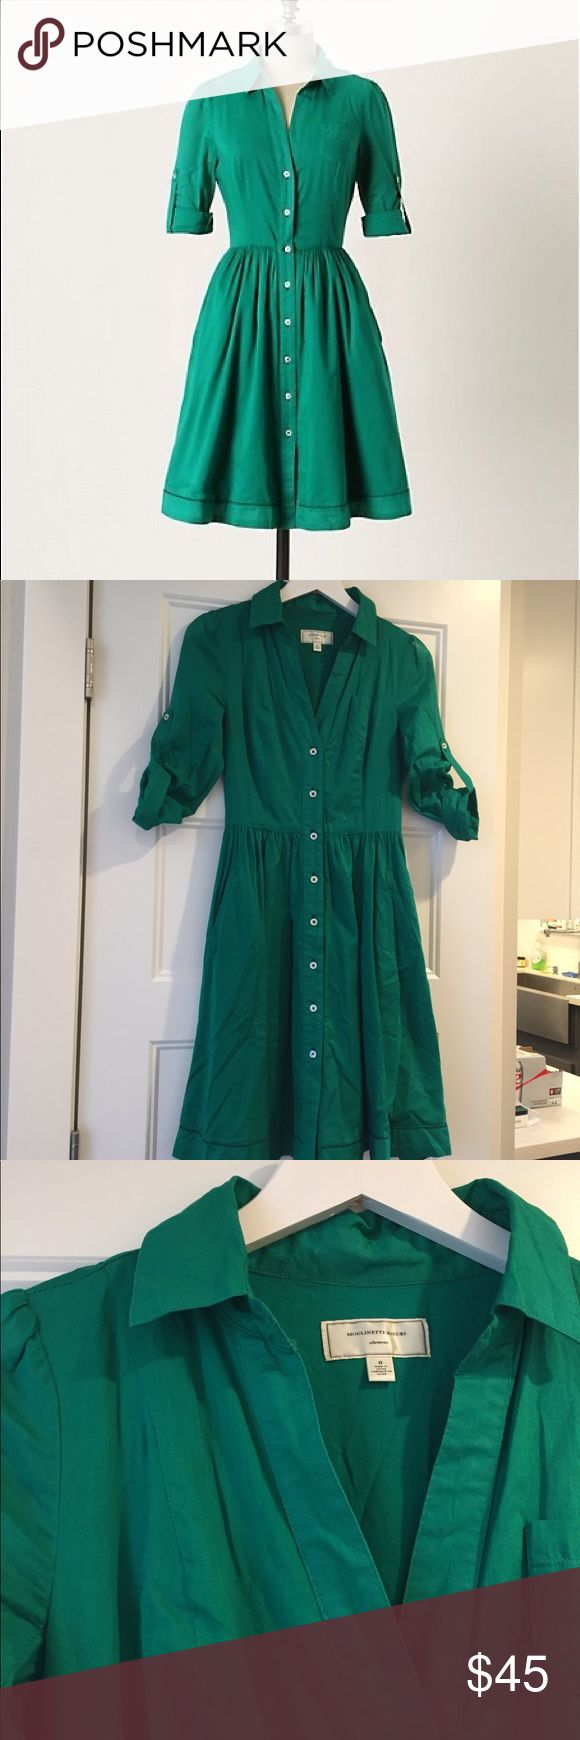 Anthropologie Moulinette Soeurs Dress - 0 Reed Shirtdress from Anthropologie brand Moulinette Soeurs in a gorgeous green. Lightweight cotton - I tried to tame the wrinkles! - with pockets, fully lined, and cute hem detail. EUC with one spot by the collar (pic included) where the cotton is a little discolored. It's not noticeable when worn. Anthropologie Dresses Midi